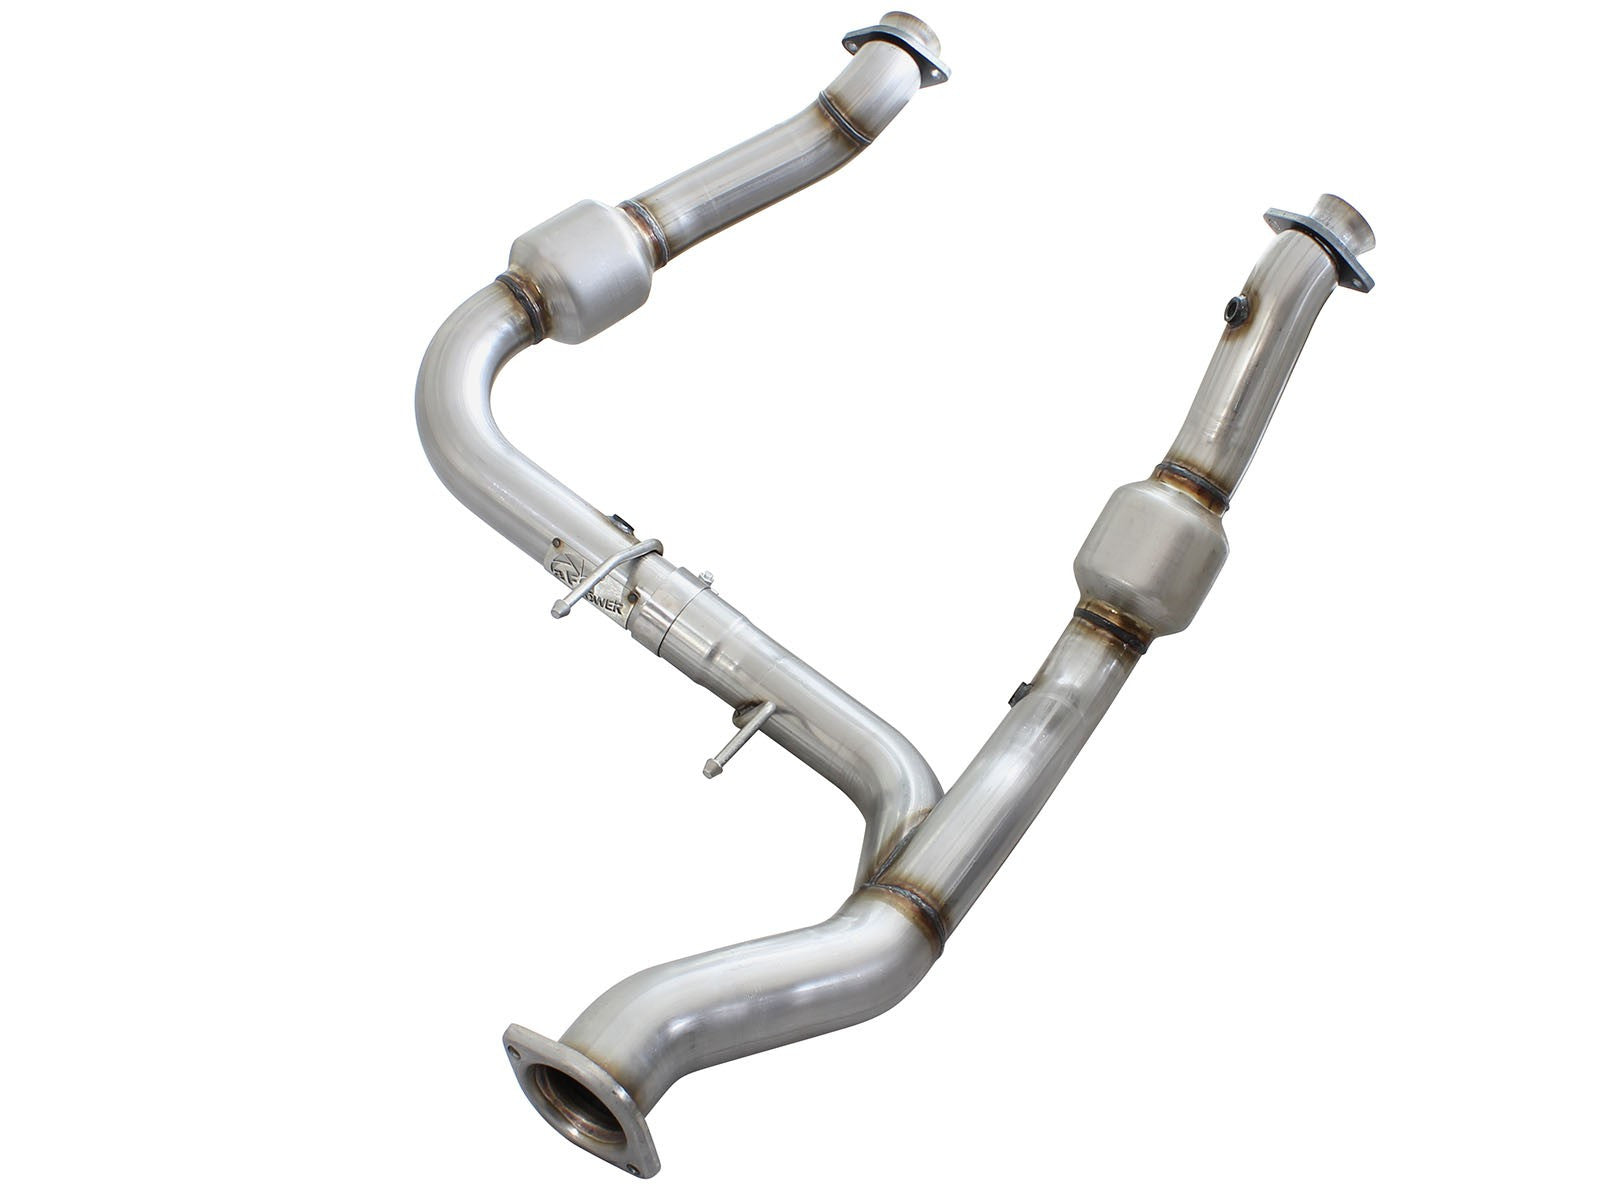 AFE | 48-43010 | MACH Force XP Catted Downpipes | Fits 2015